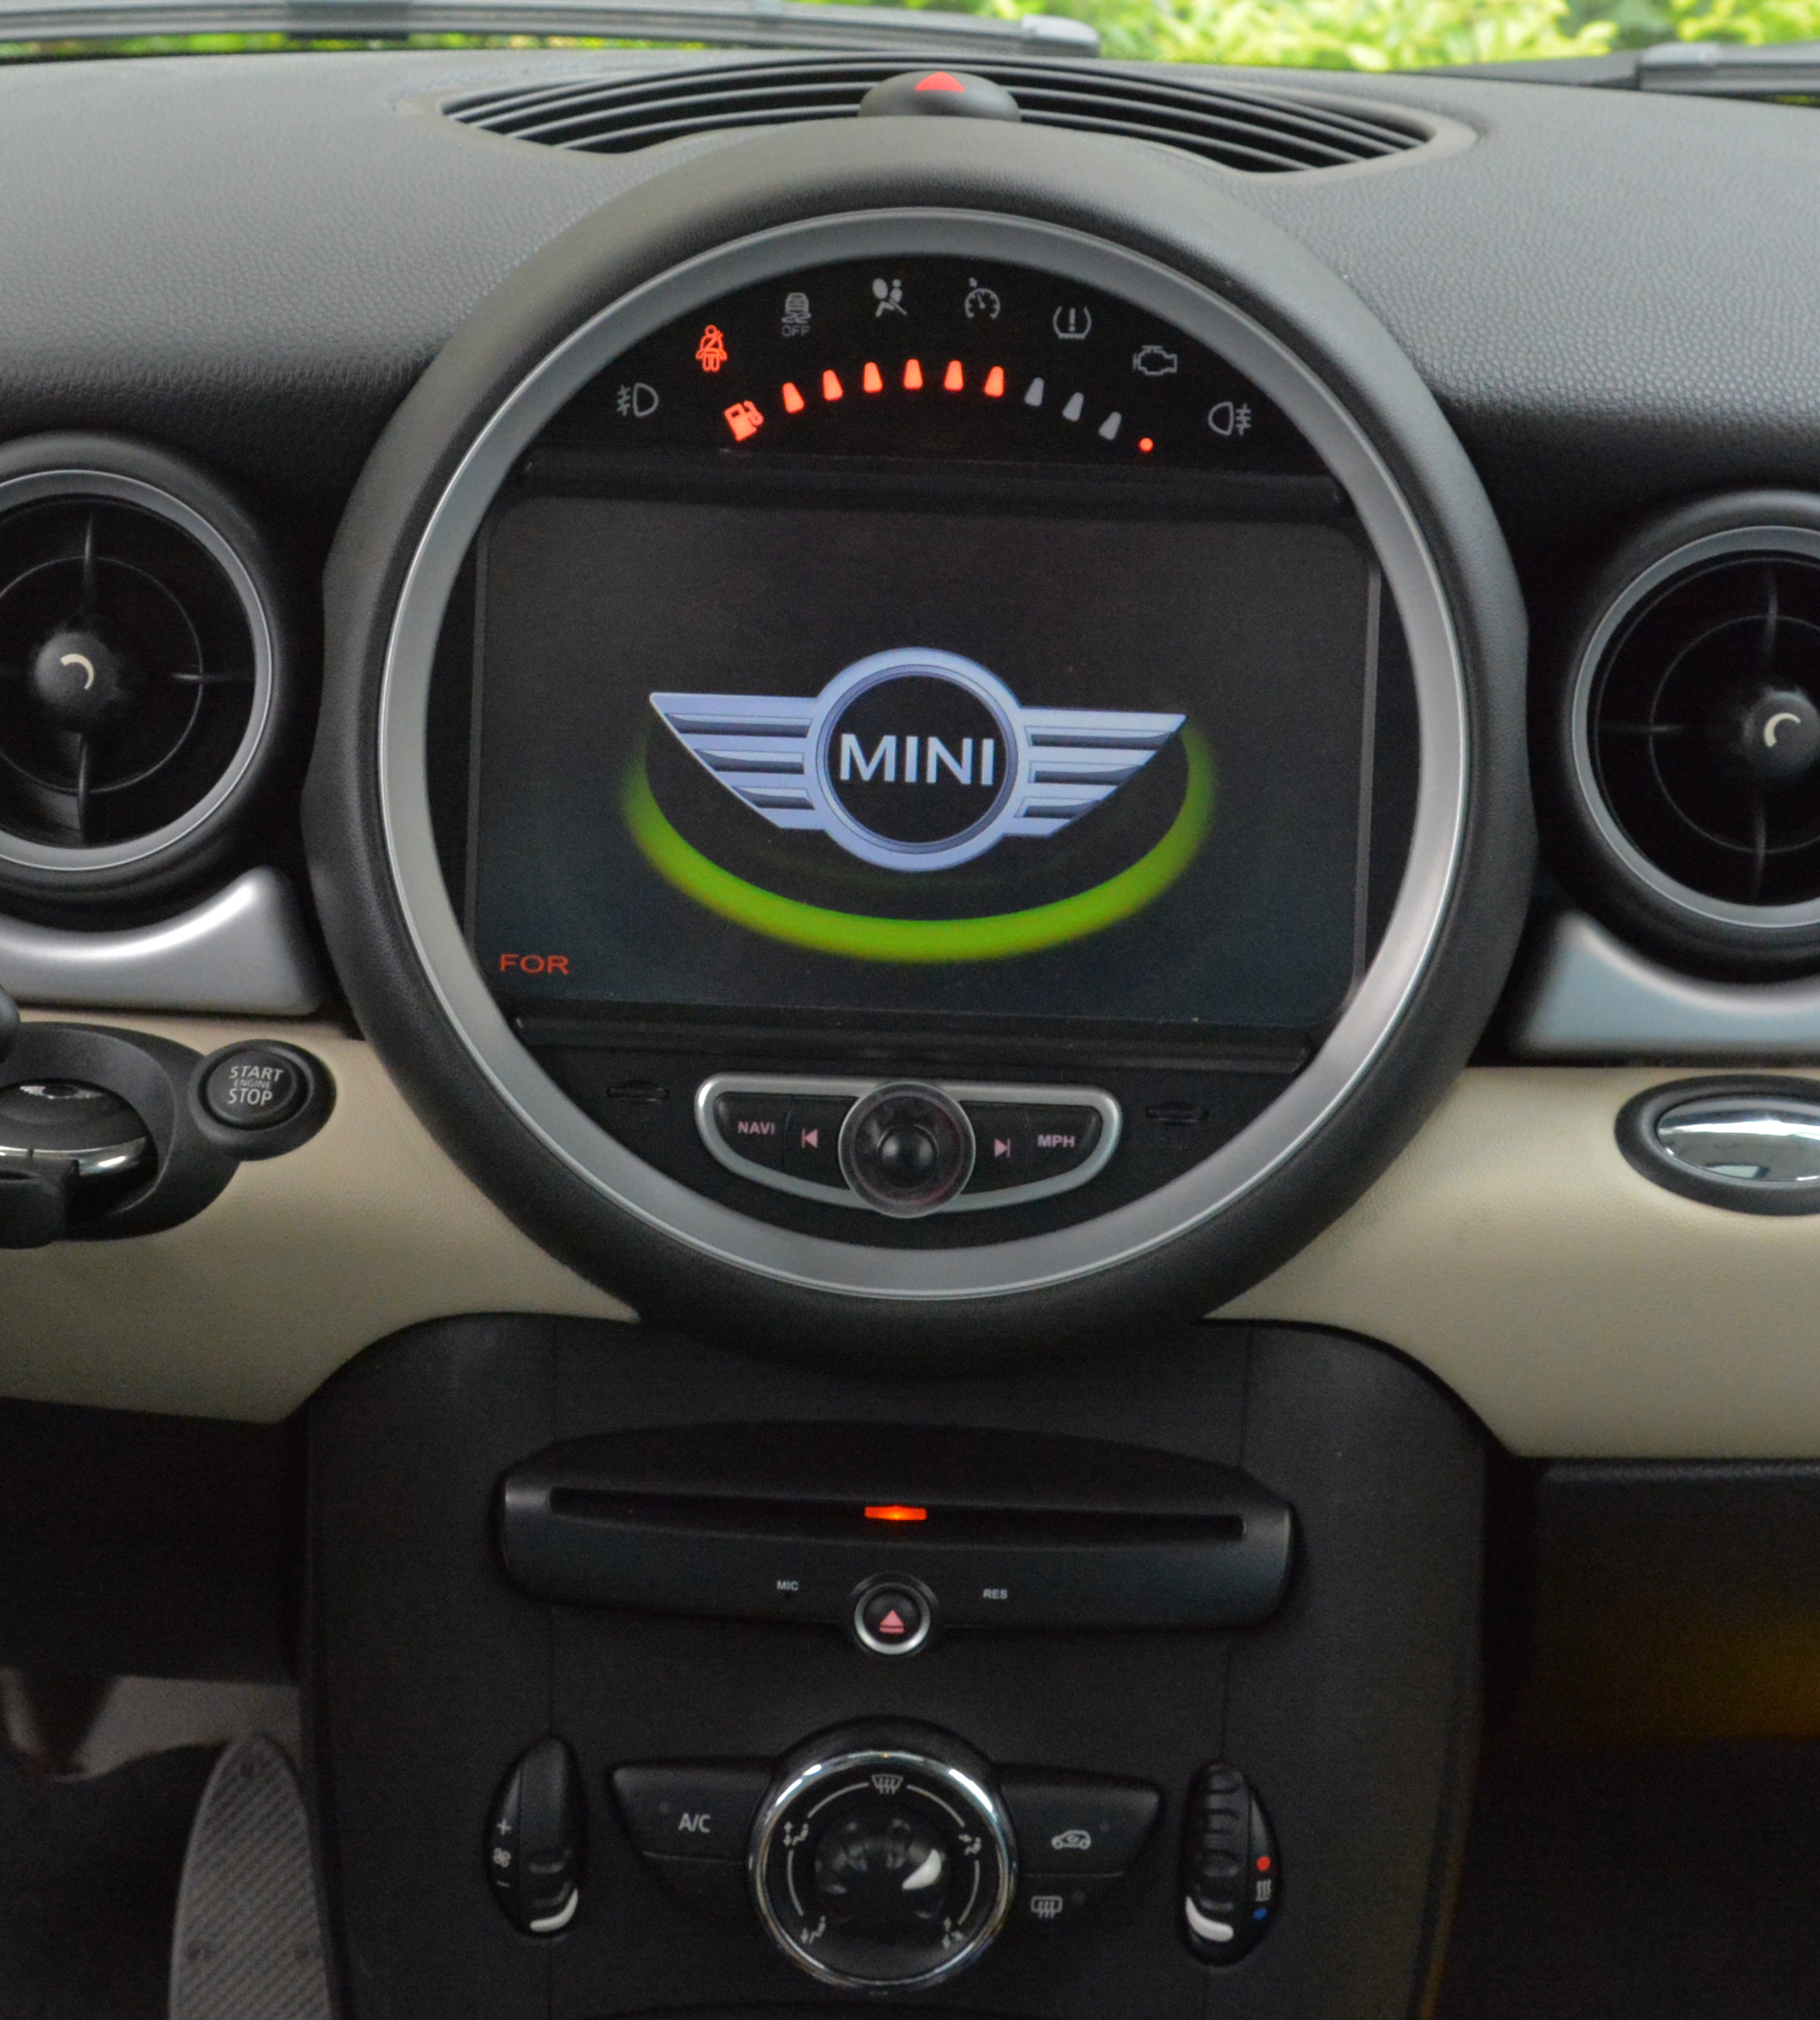 autoradio gps dvd mini cooper 2006 2013 cran tactile 7 hightech privee. Black Bedroom Furniture Sets. Home Design Ideas